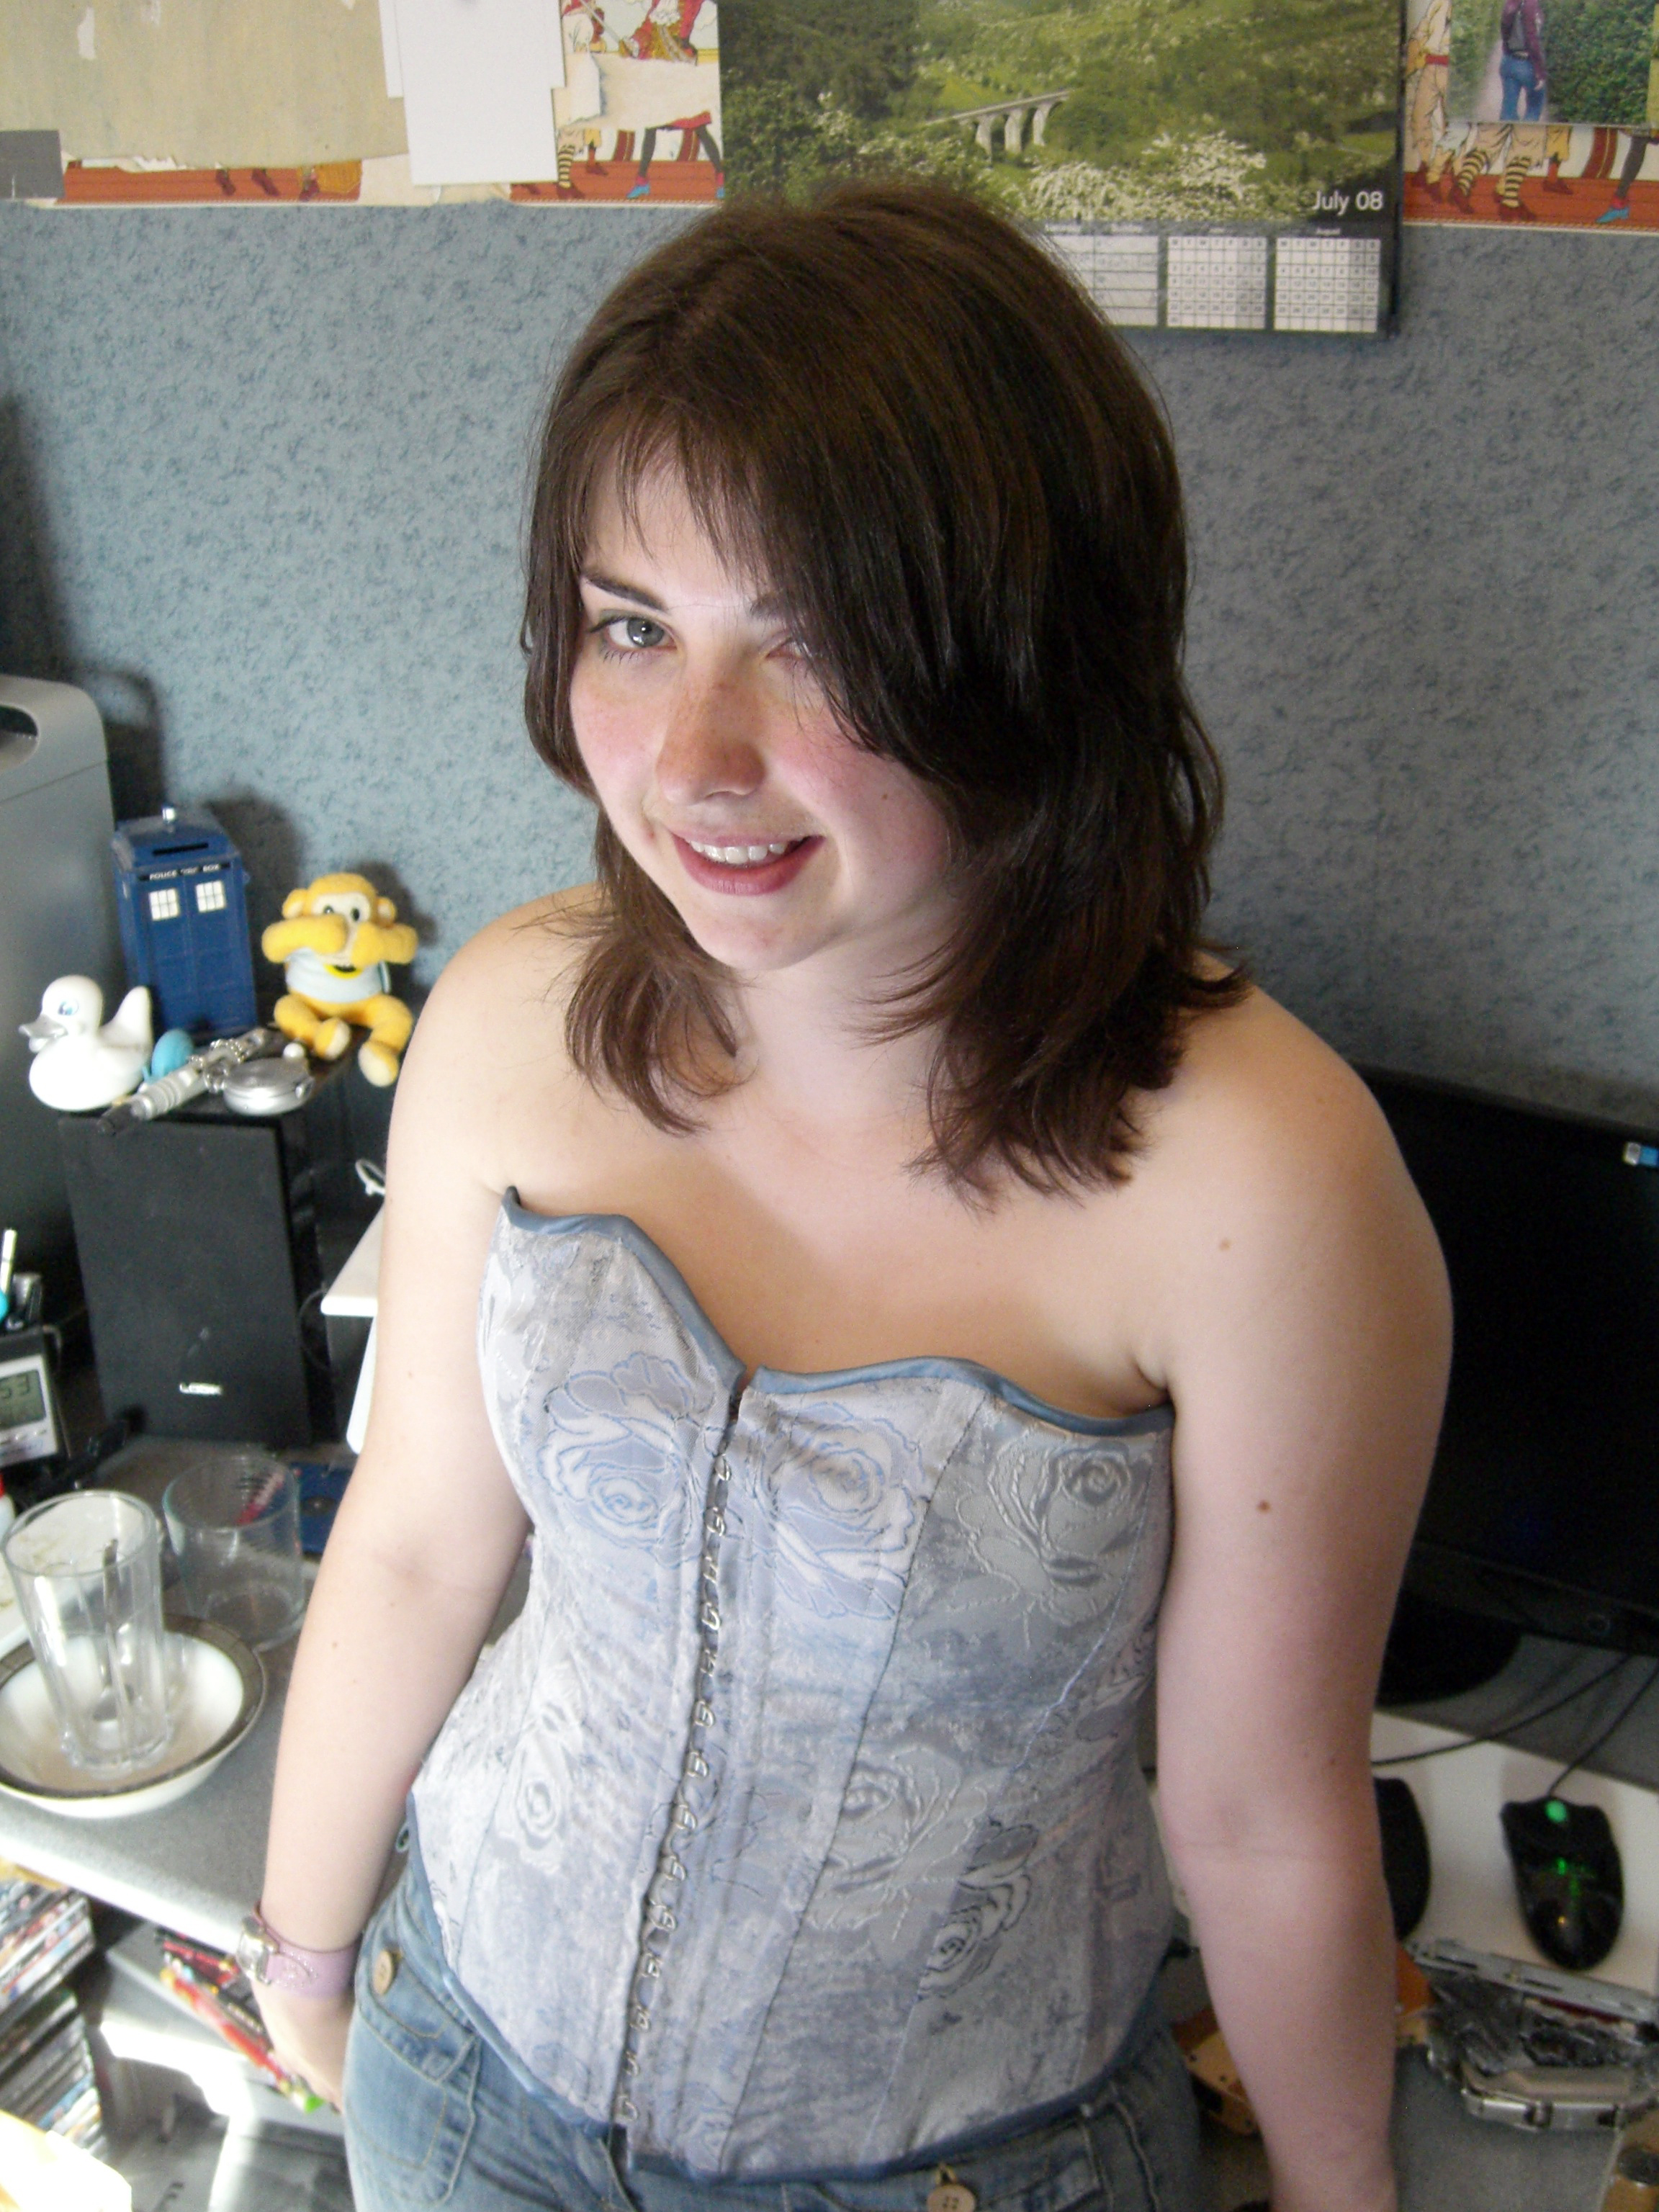 My first corset - Victorian style!